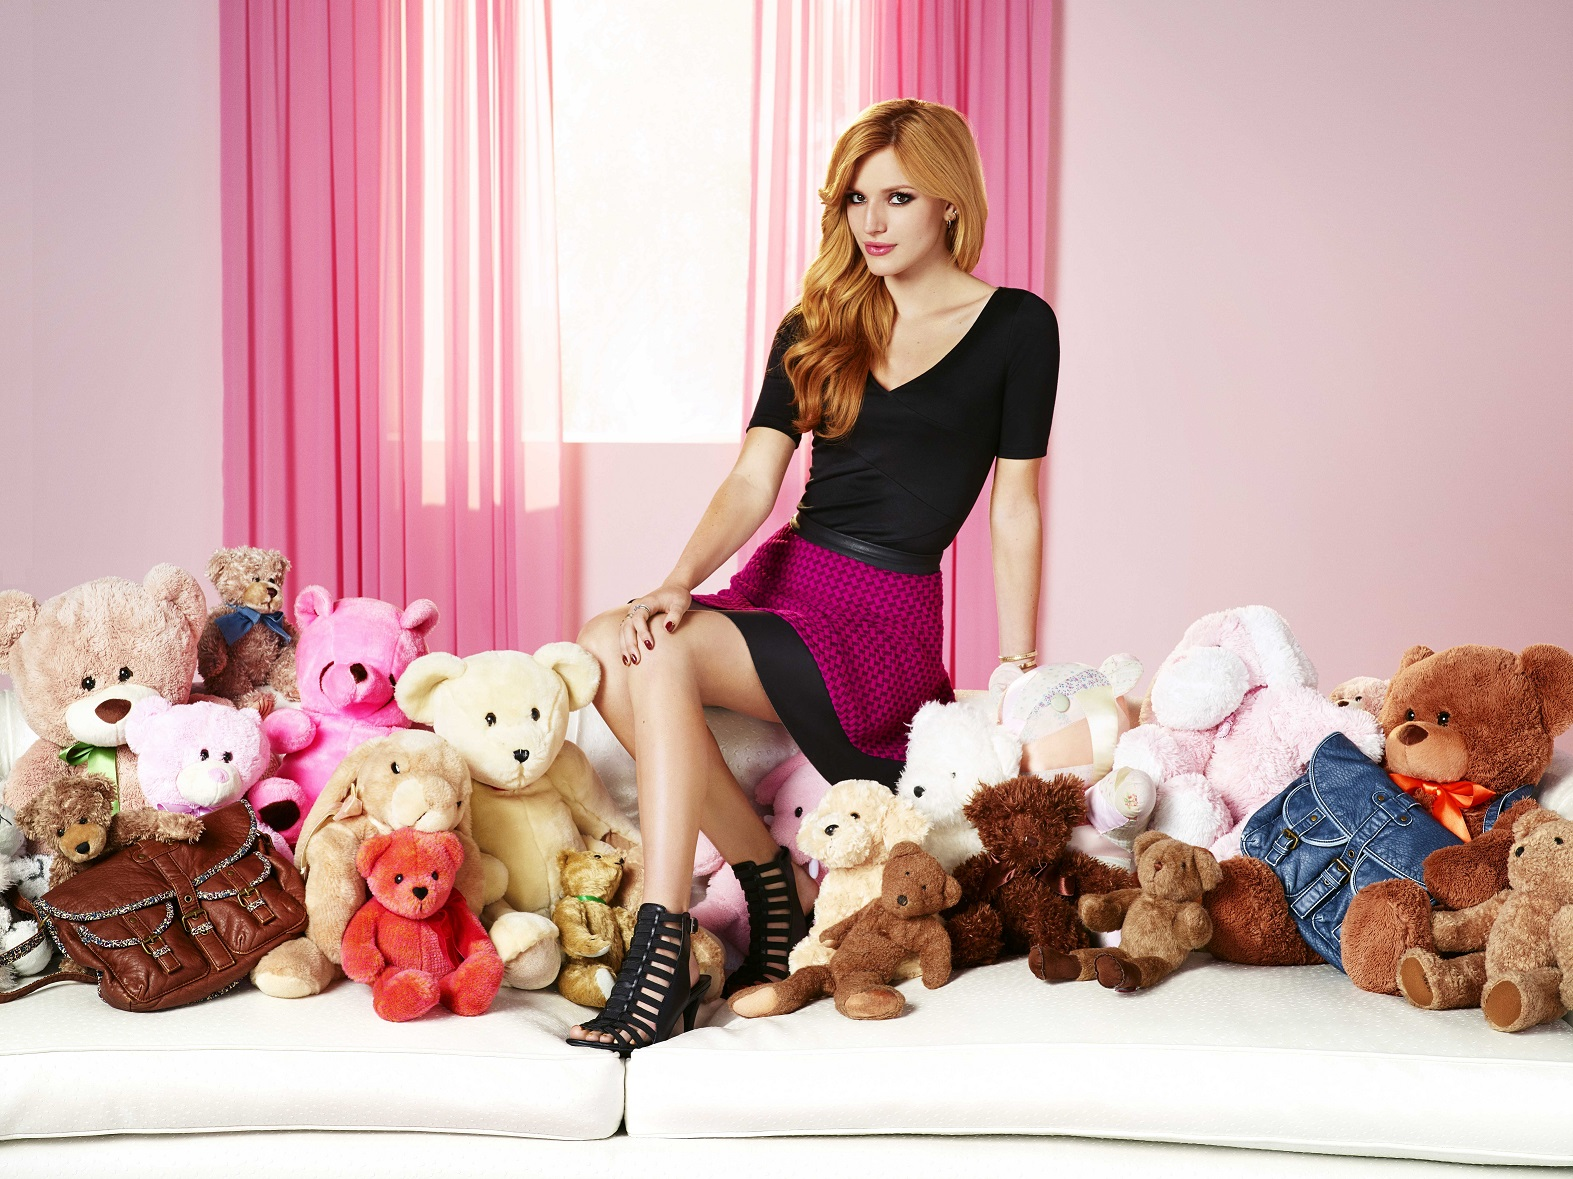 Bella Thorne for Kohls Candies Ad campaign (2015) photo shoot